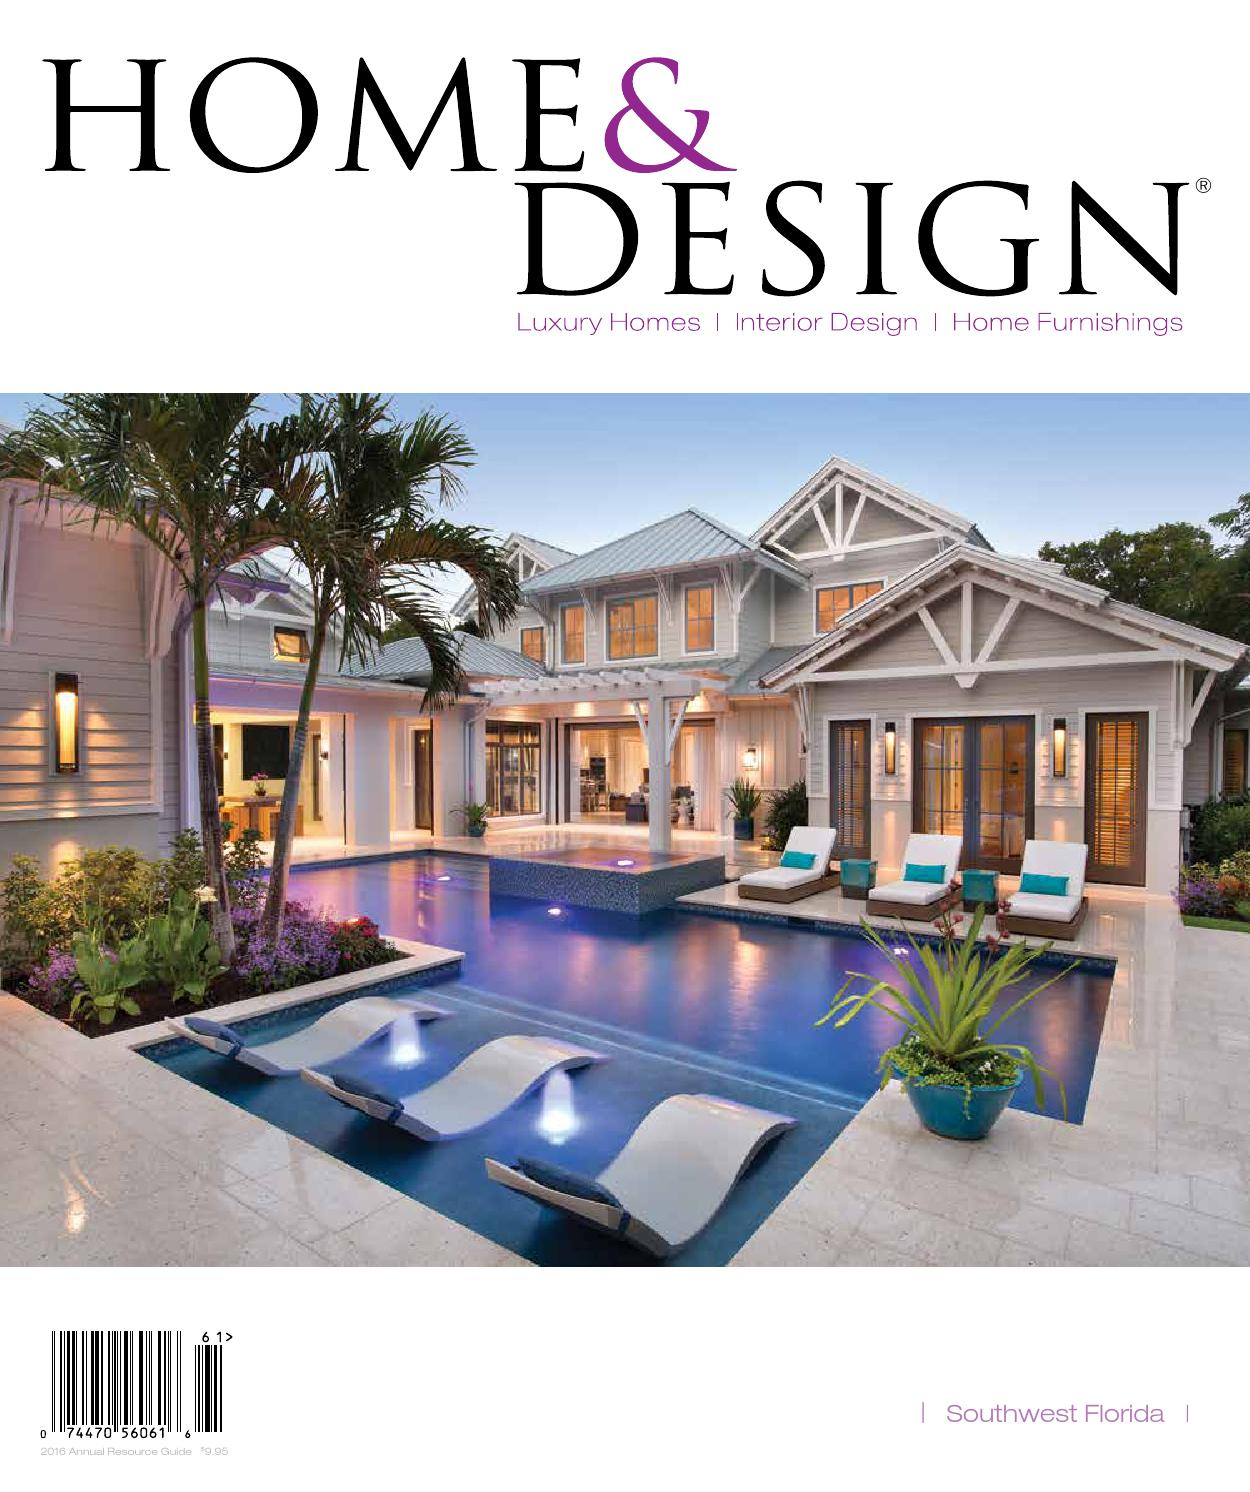 Home Design Magazine Annual Resource Guide 2016 Southwest Rh Issuu Com